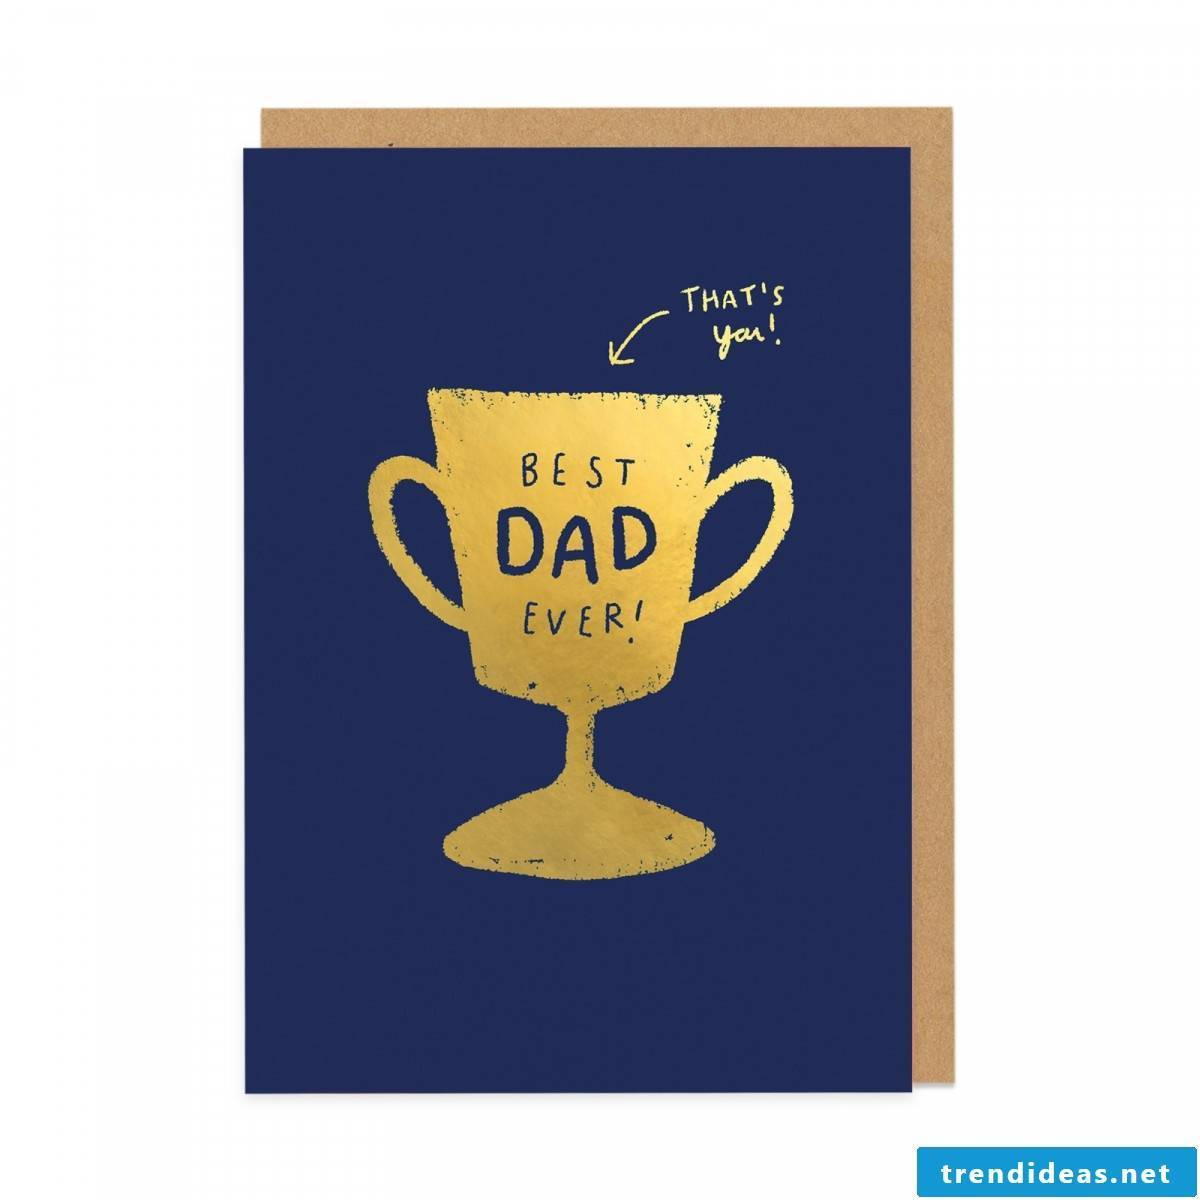 Find sayings for dad and make a Father's Day card